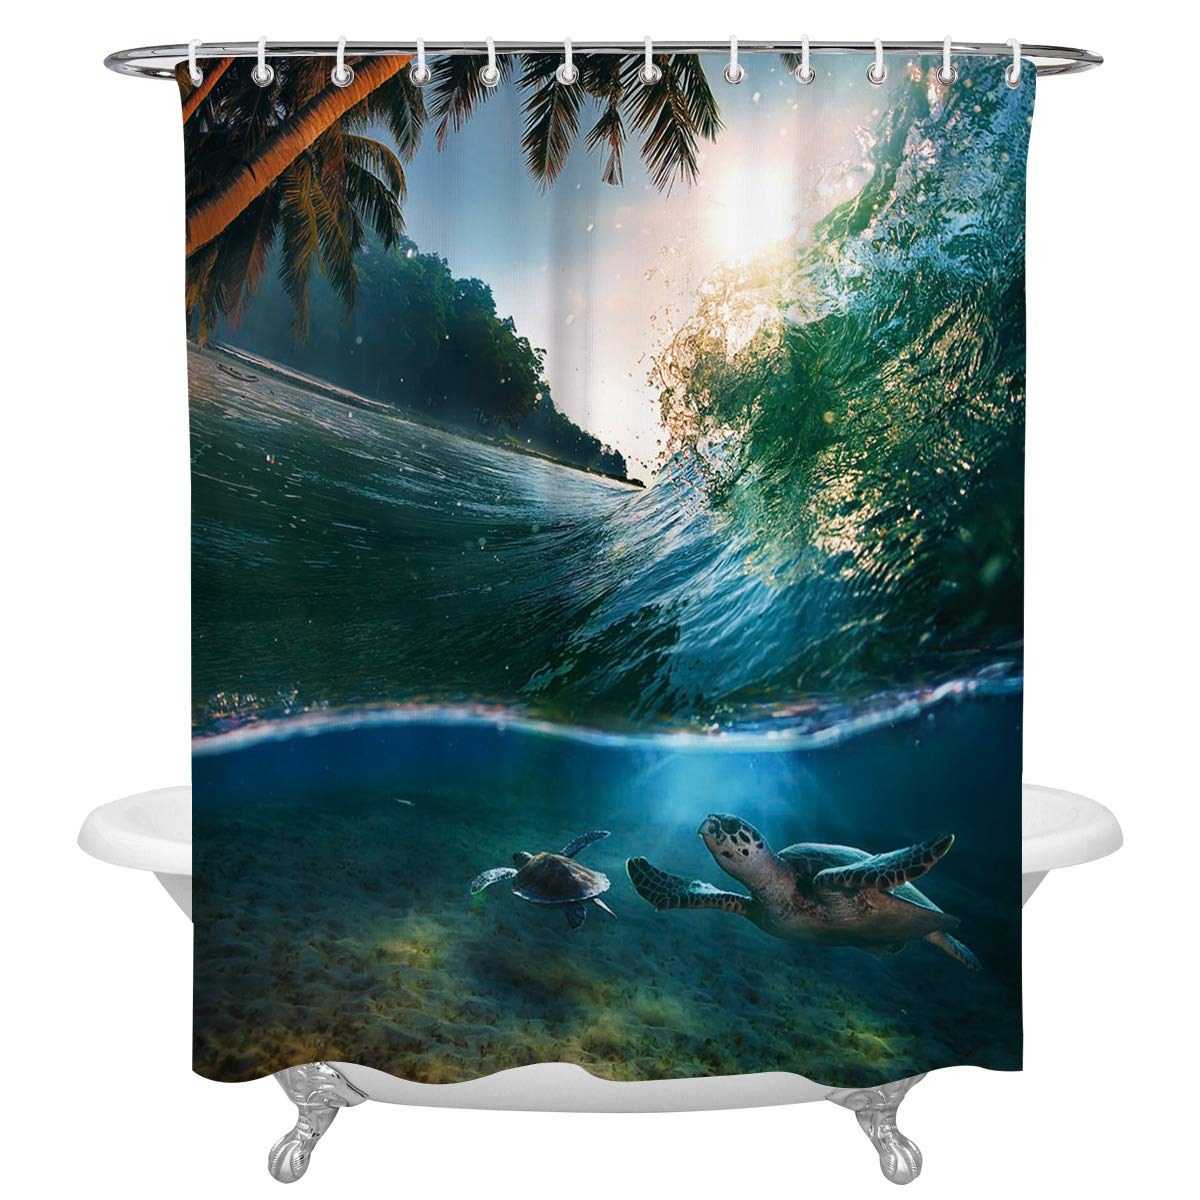 FAMILYDECOR Sea Turtle Polyester Fabric Shower Curtains for Bathroom, Tropical Paradise Coconut Palms Crystal Ocean Clear Sea Waterproof Bath Curtain with Hooks, 72x78 Inch, White and Gray